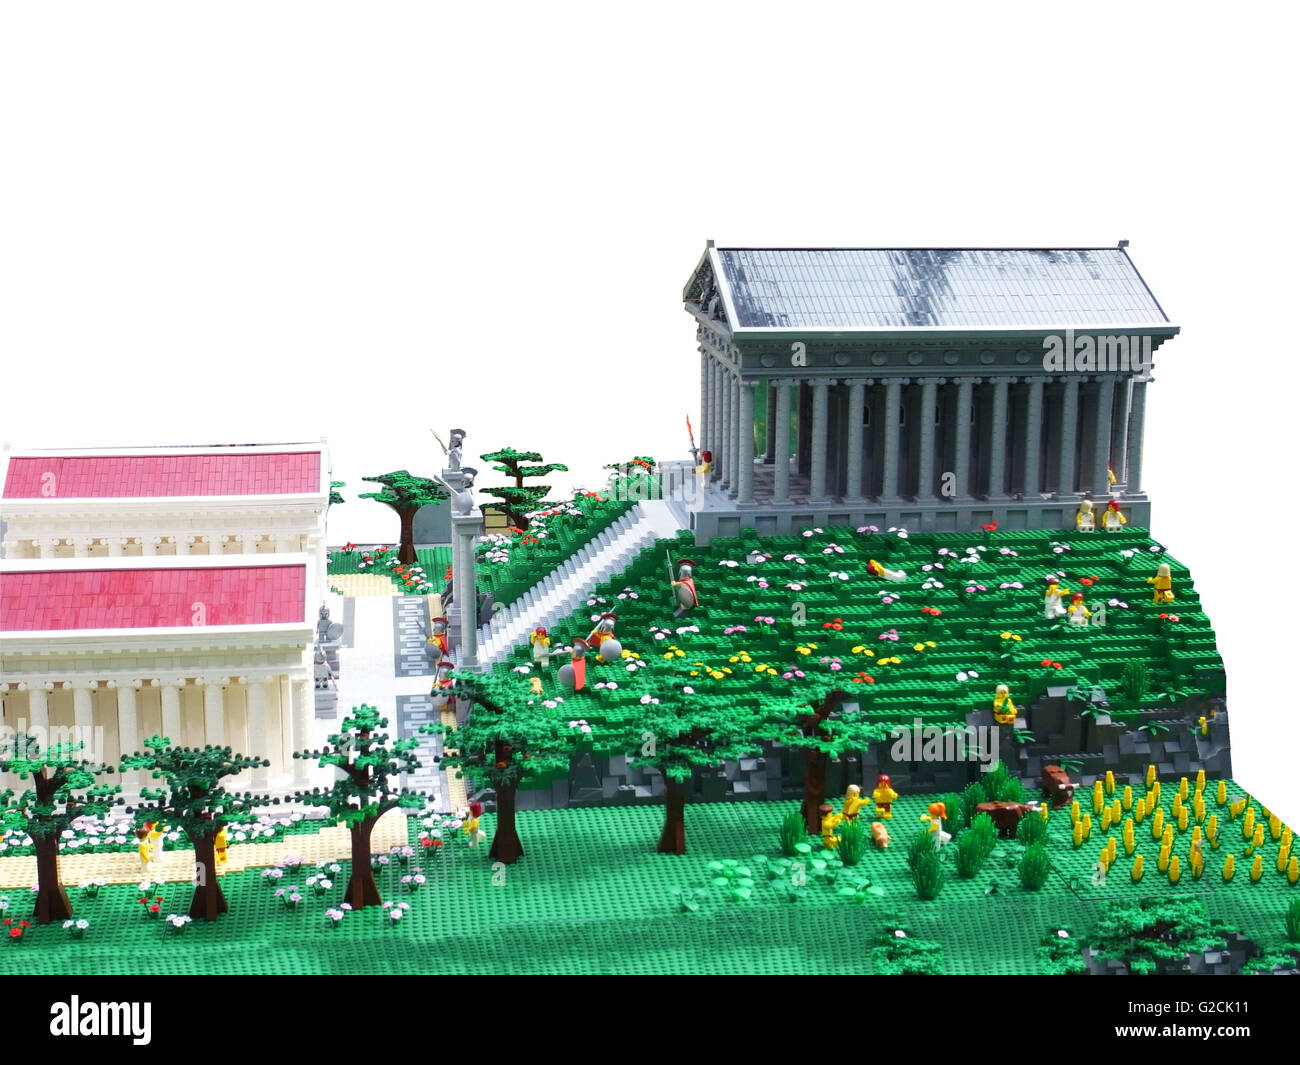 Lego Model build ancient old time day sky toy fun landscape Greece Olympic Mountains Athenaeum Athena - Stock Image